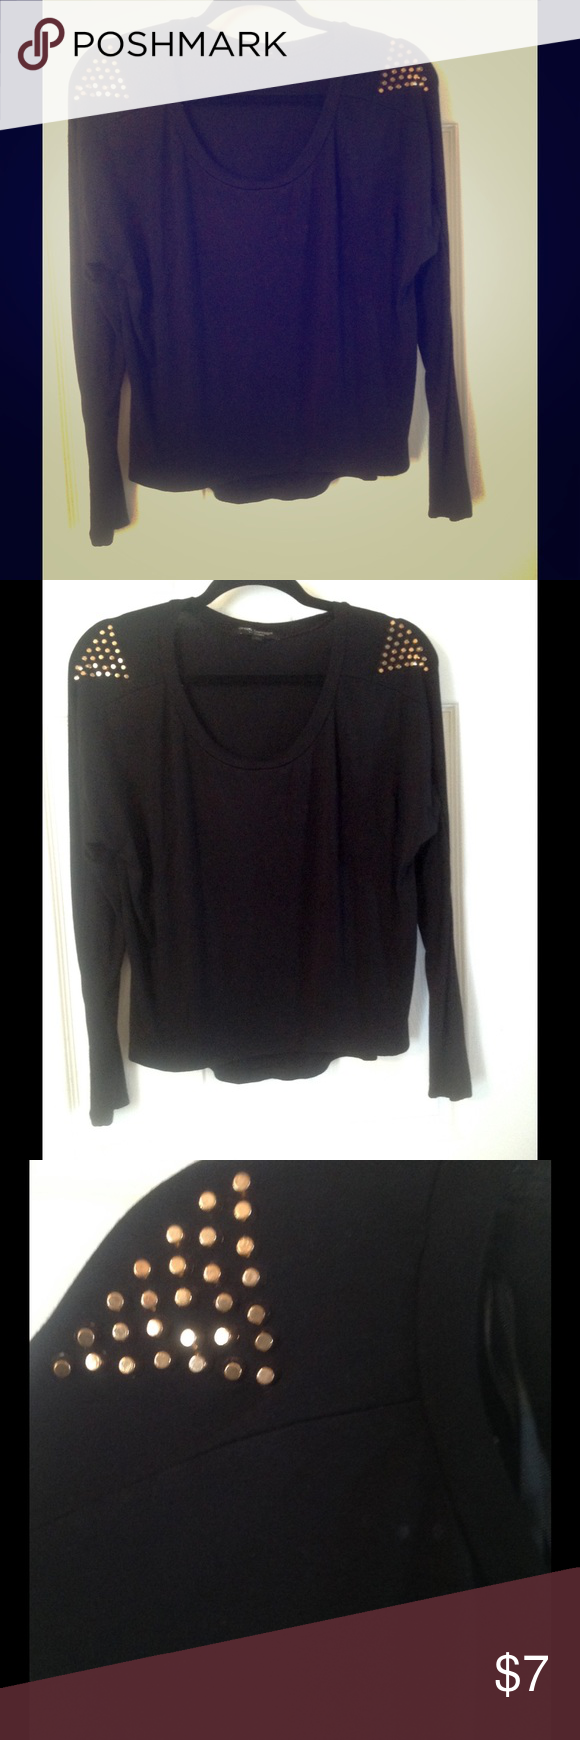 Cute Black top, Size M (Like New) Cute Black top with Gold studs on shoulders. Like New! Tops